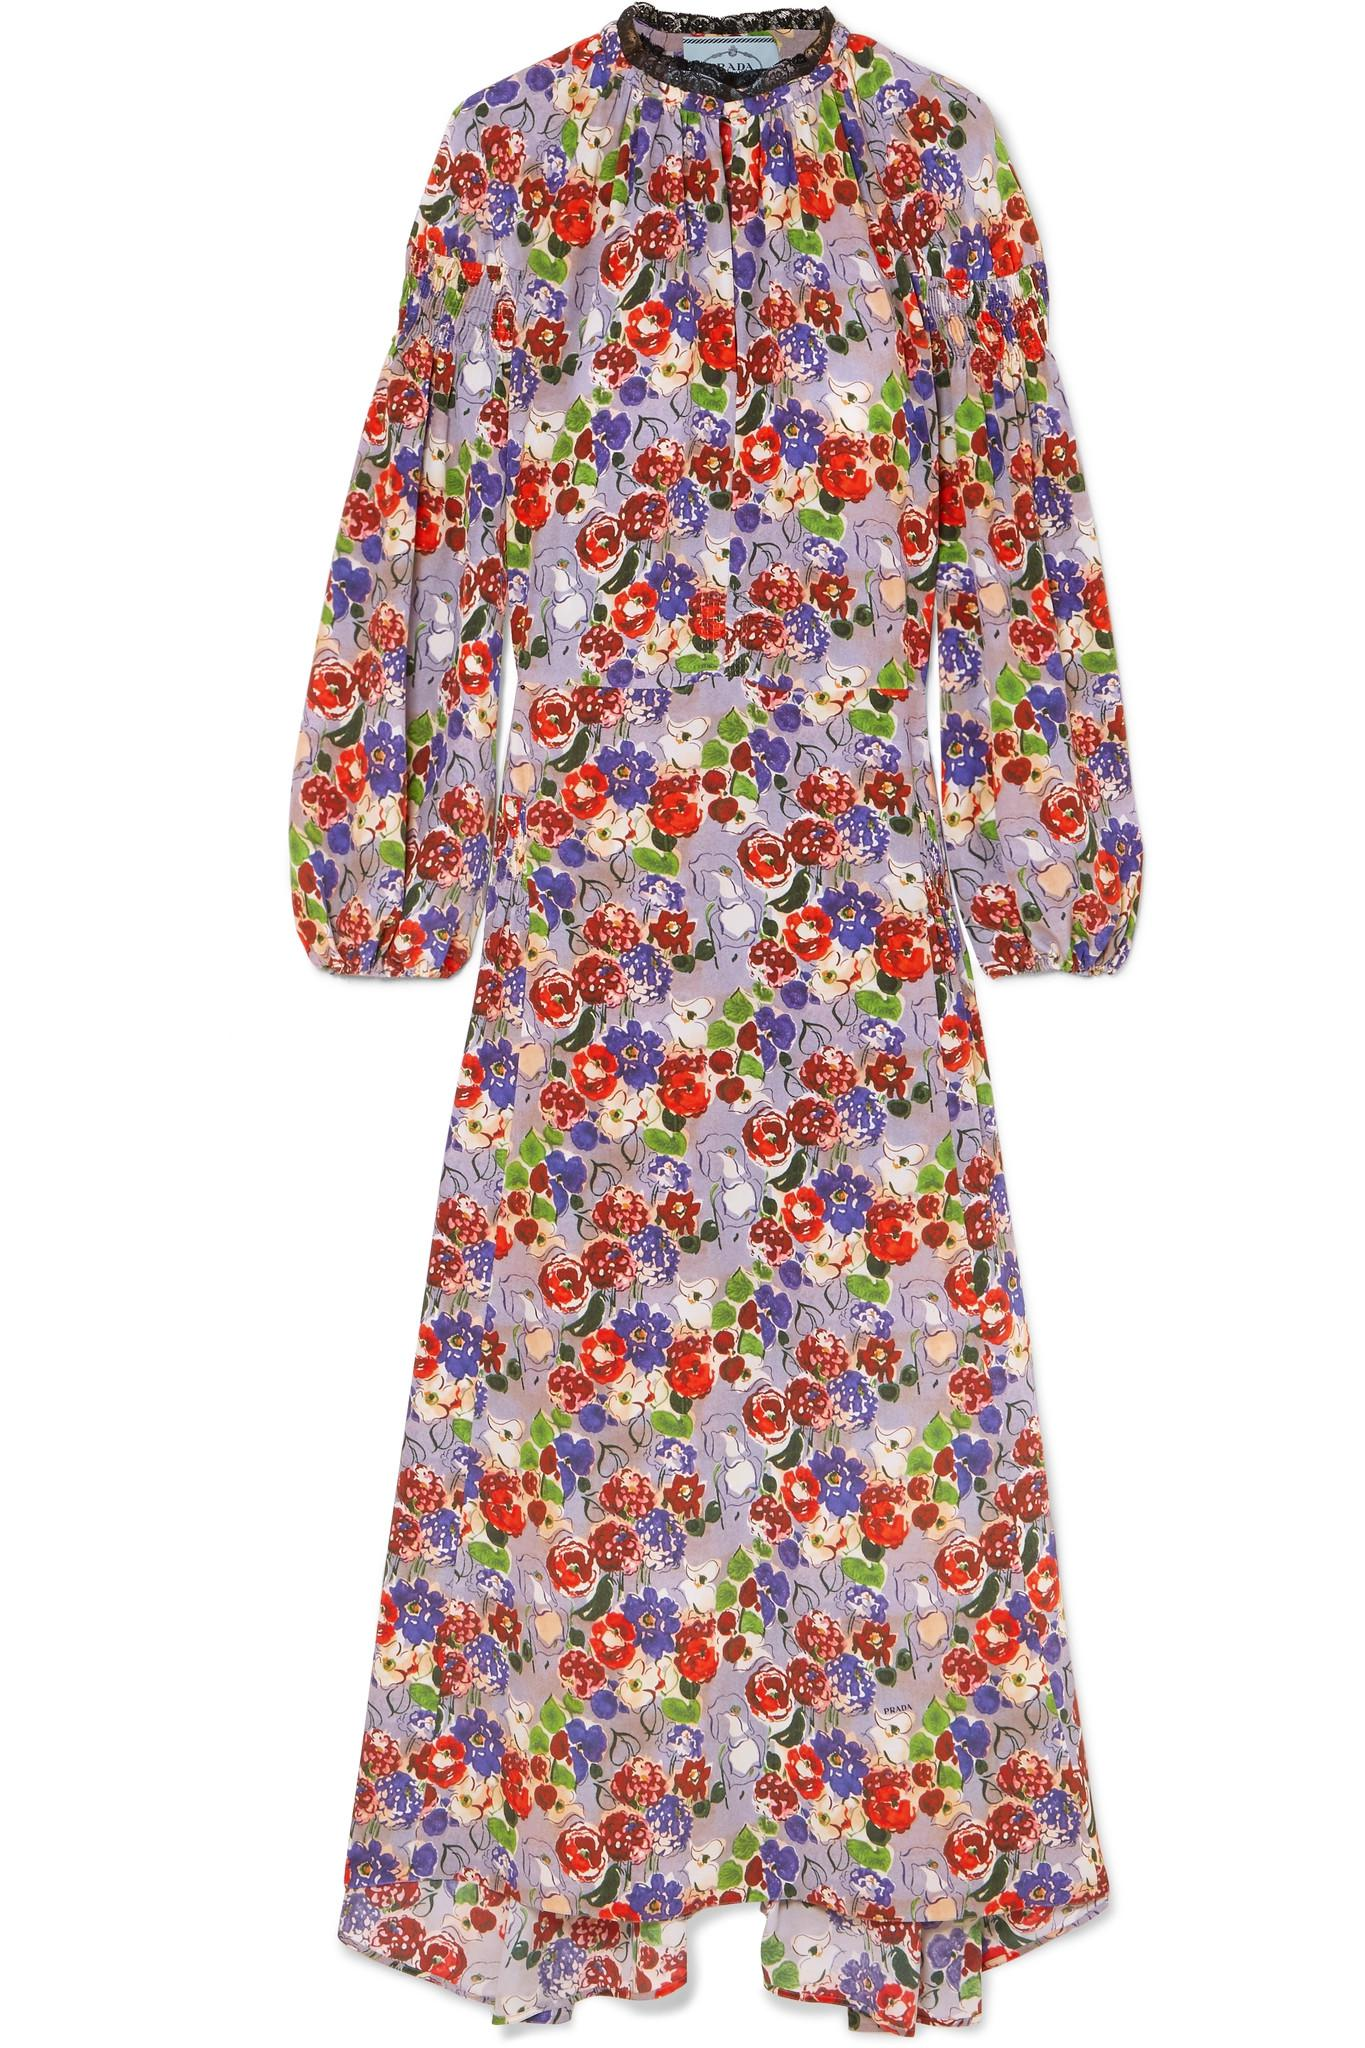 Orange 100% Original Pay With Paypal Sale Online Lace-trimmed Shirred Floral-print Silk-crepe Midi Dress - Lilac Prada Outlet Eastbay Sale View 94wChG83